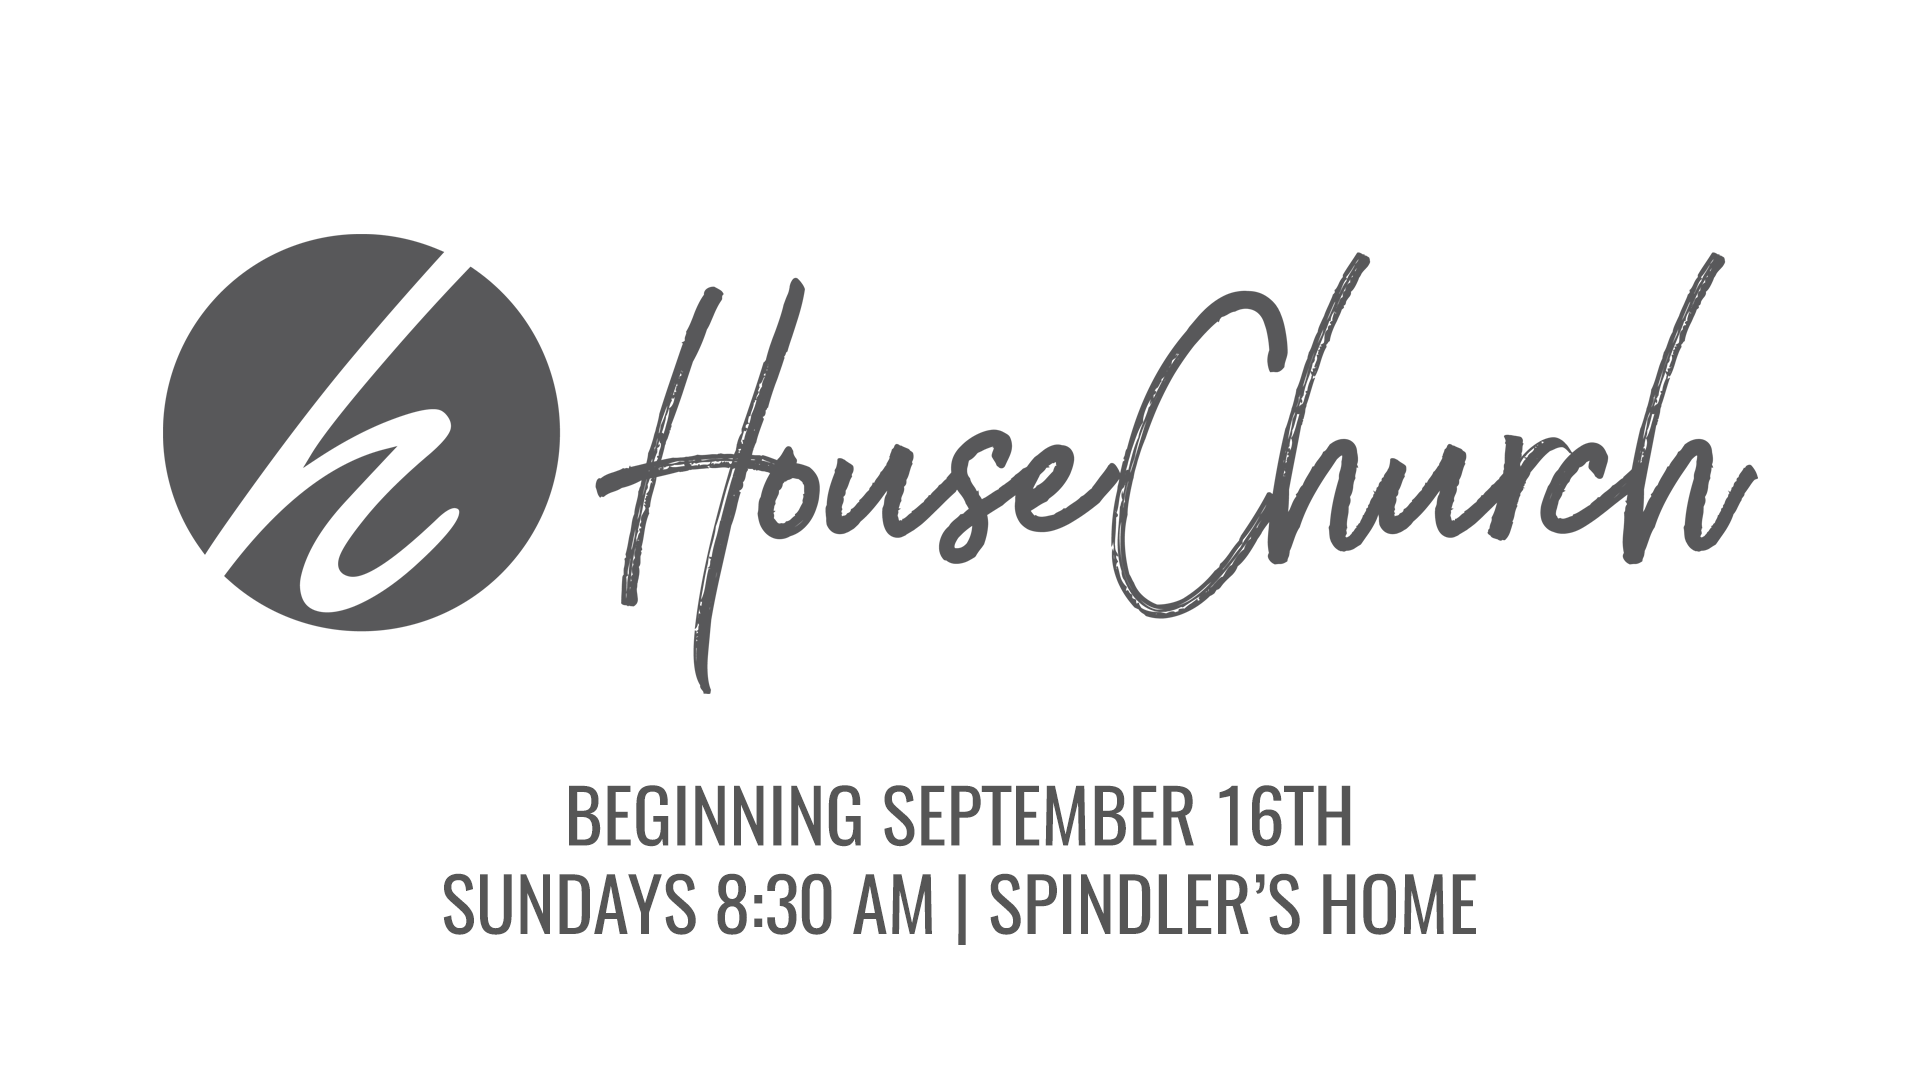 House Church Clayton Launch